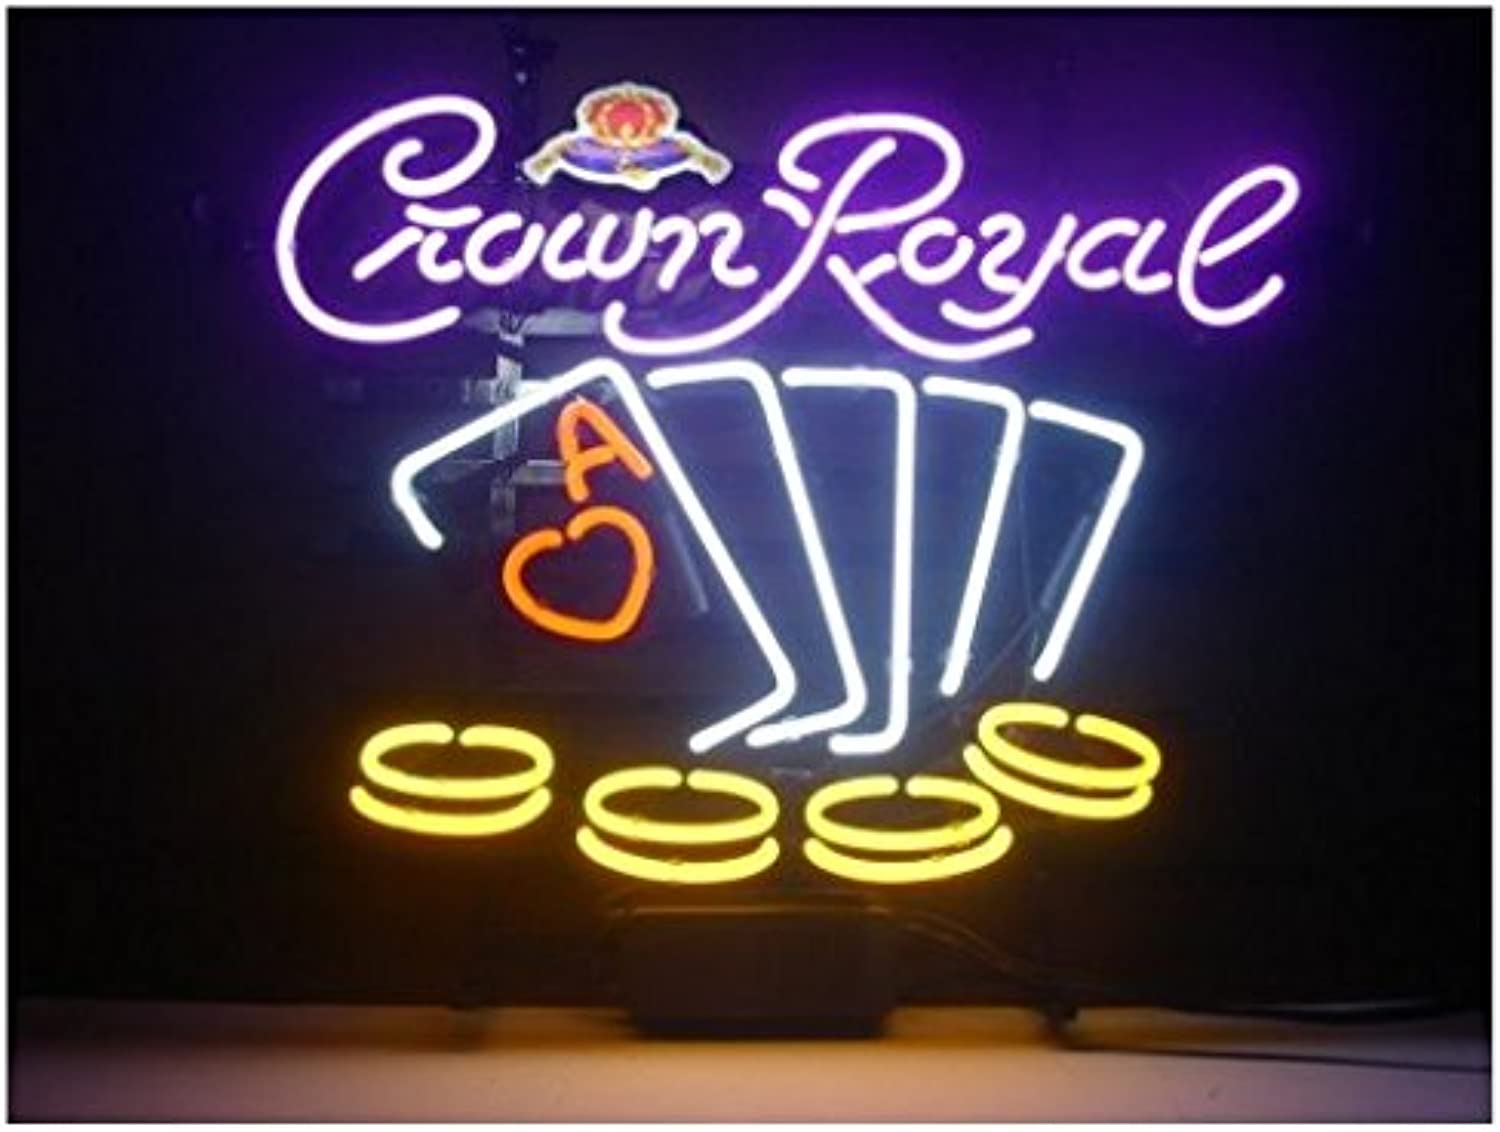 Crown Royal Poker Beer Bar Pub Store Party Game Room Wall Windows Display Neon Signs 19x15